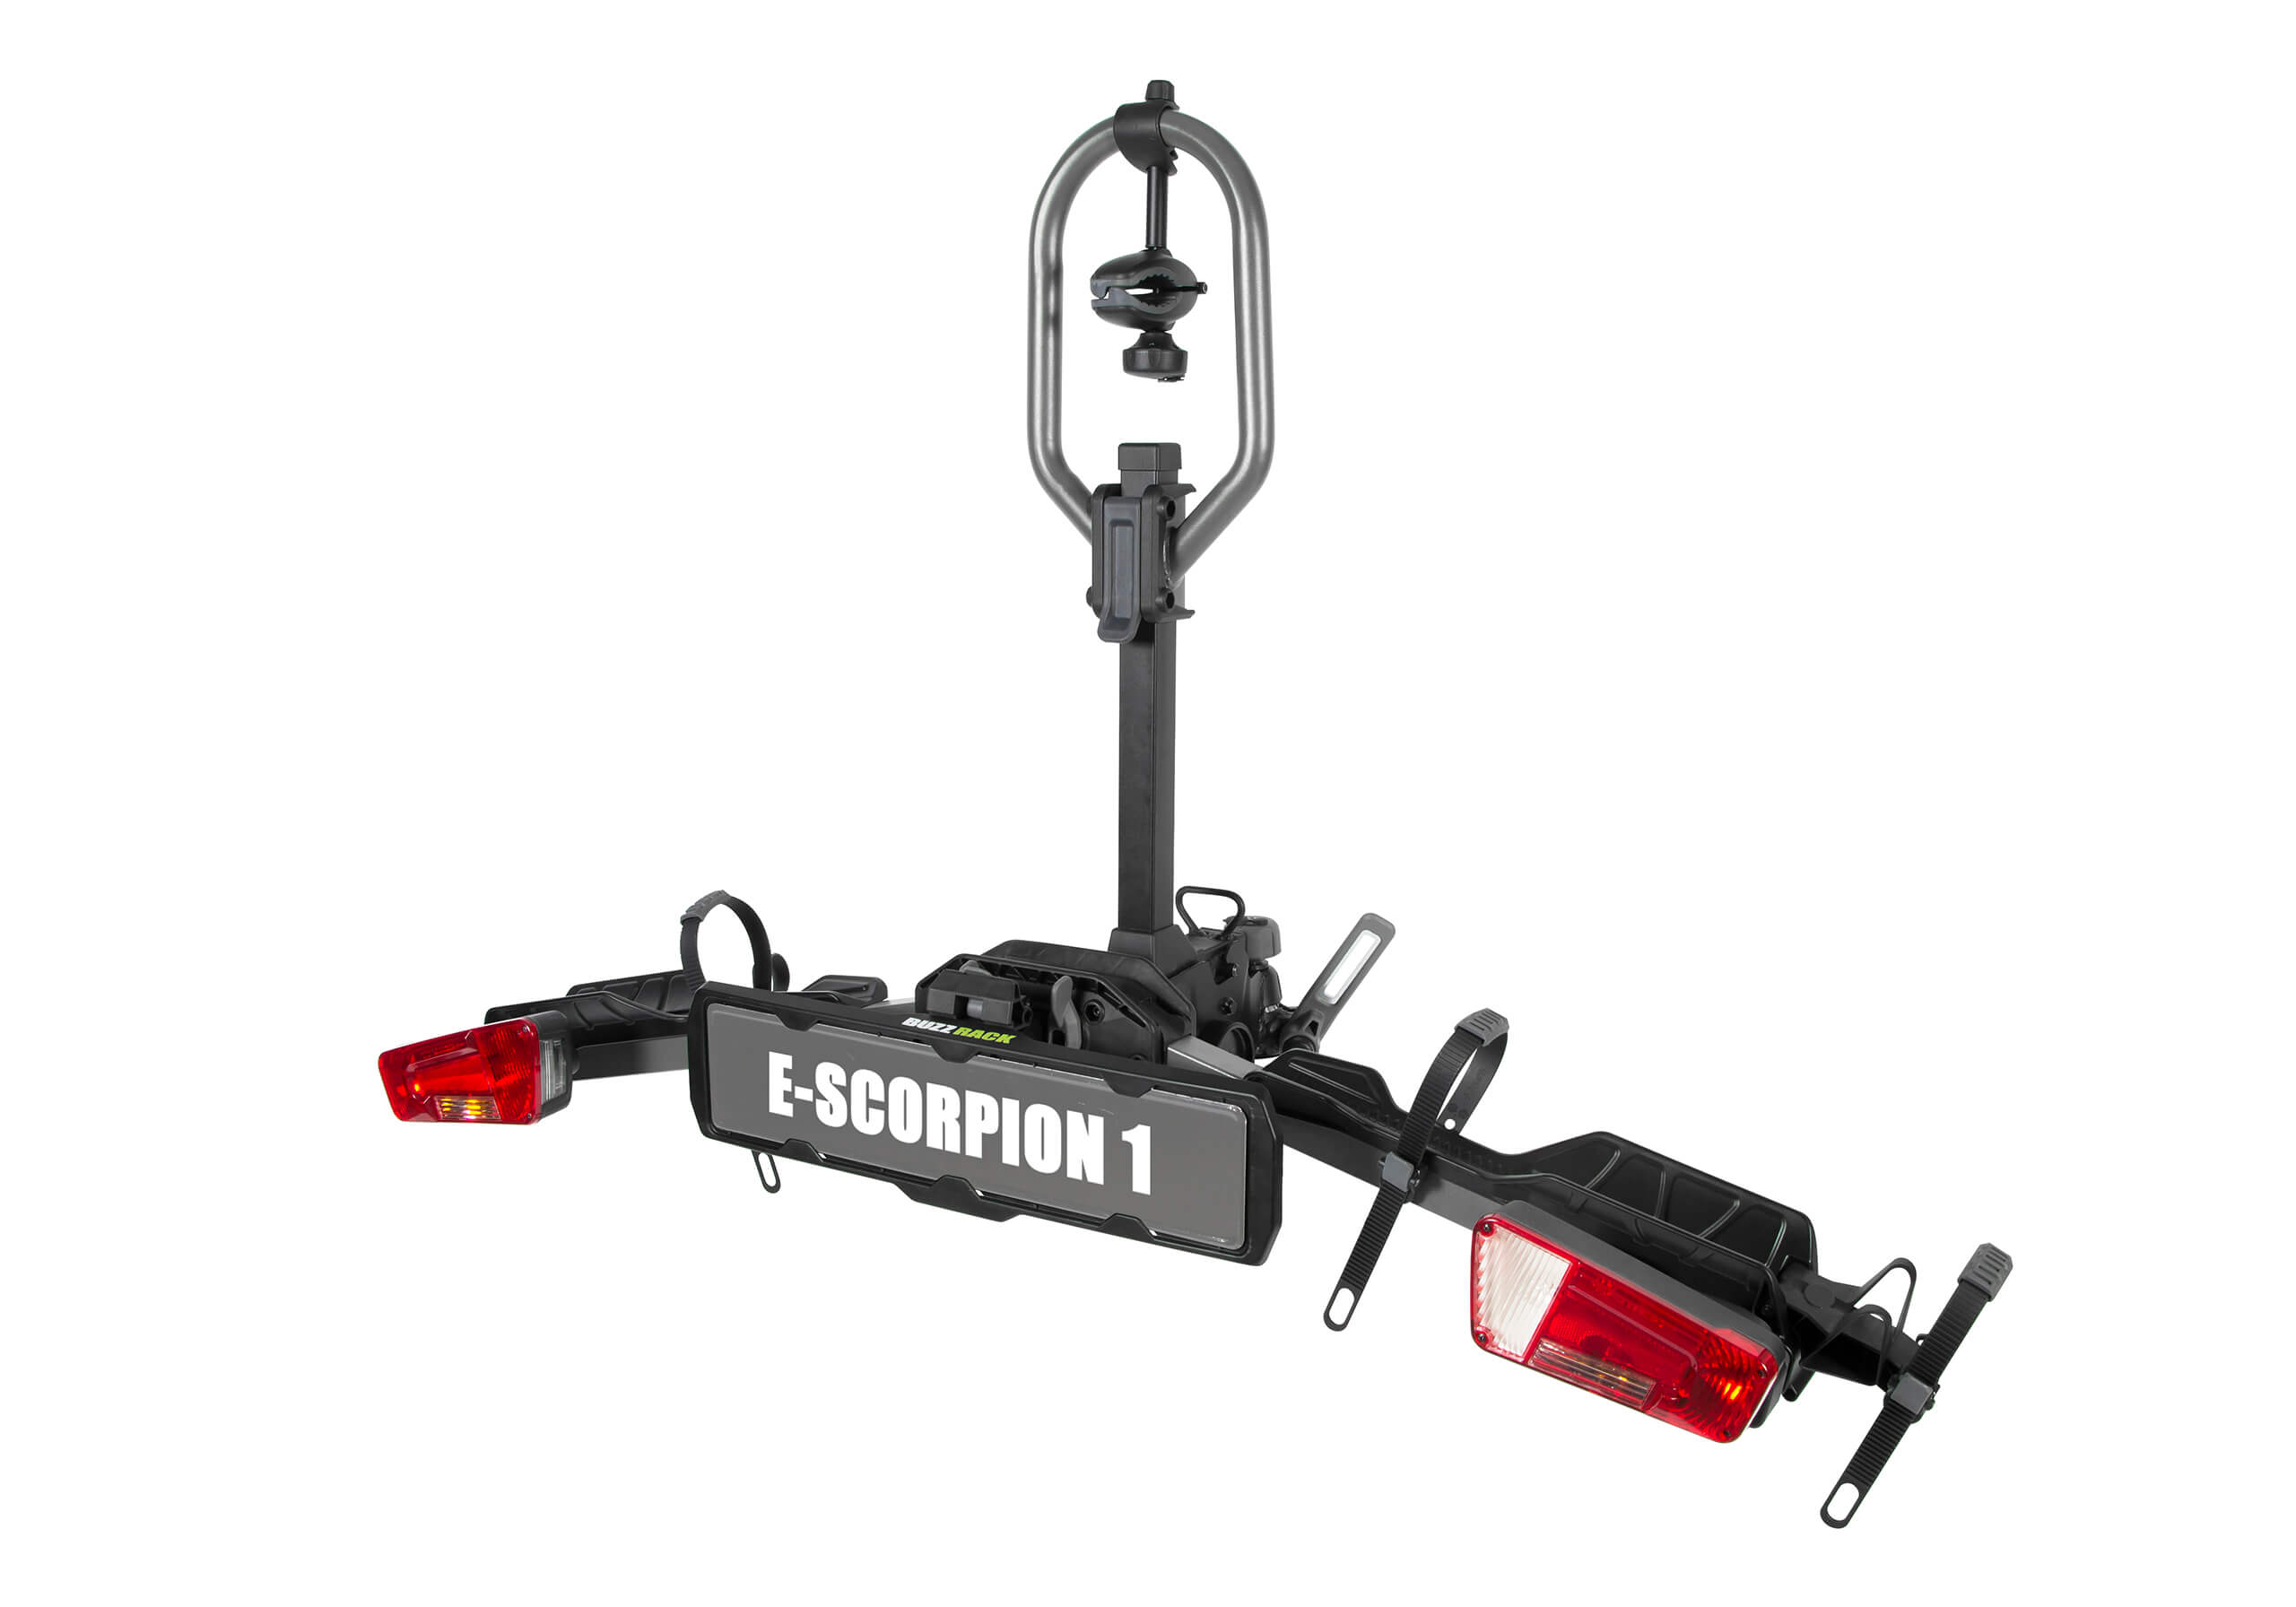 :BUZZ RACK E-Scorpion 1 bike folding rack no. BRP611